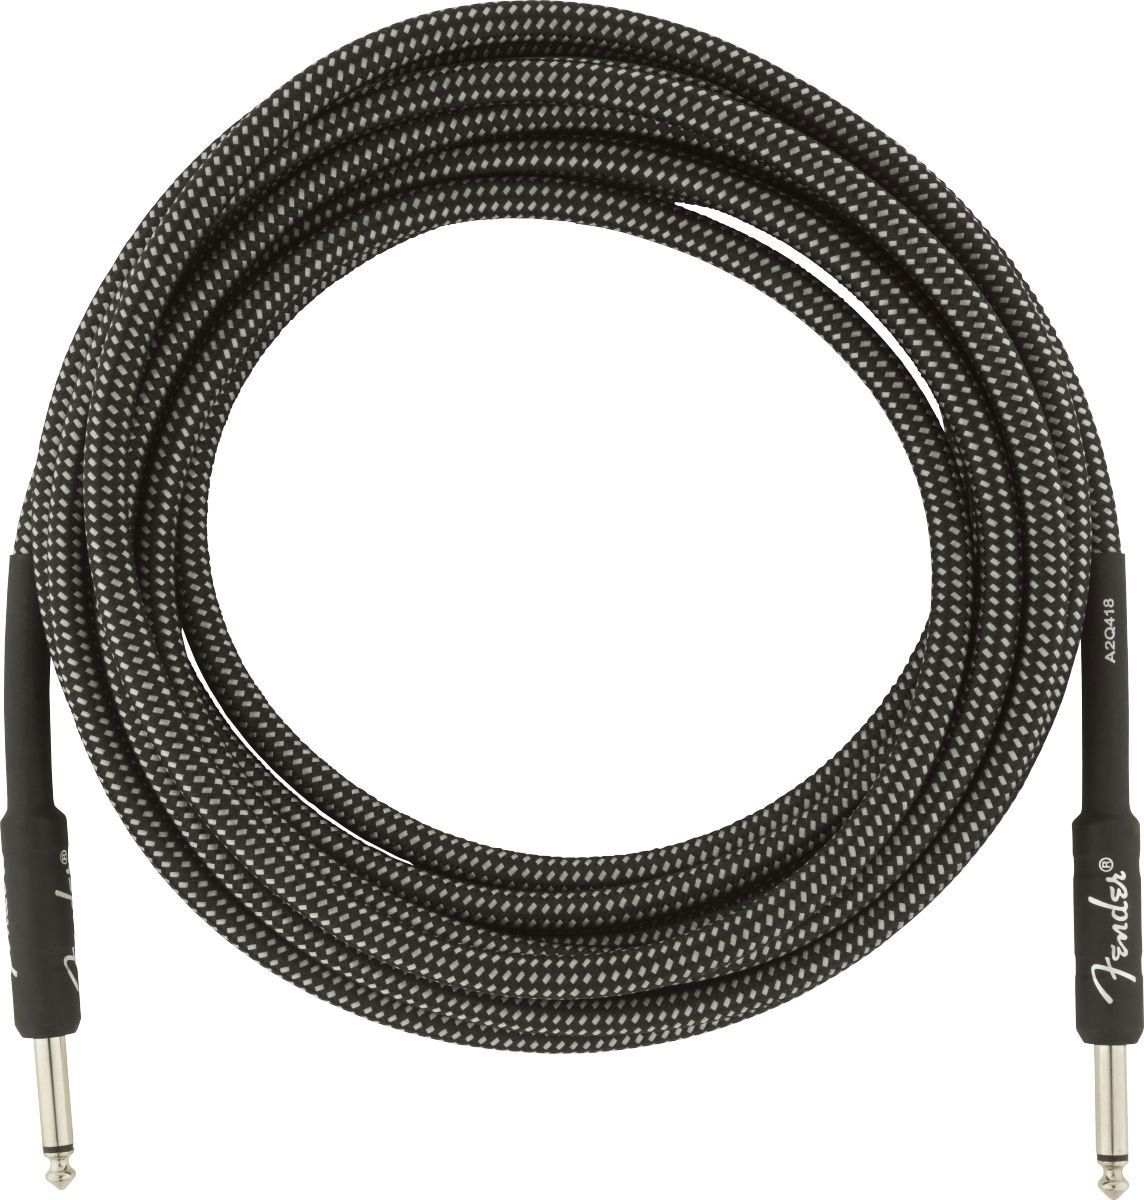 PROFESSIONAL SERIES INSTRUMENT CABLE 15' GRAY TWEED